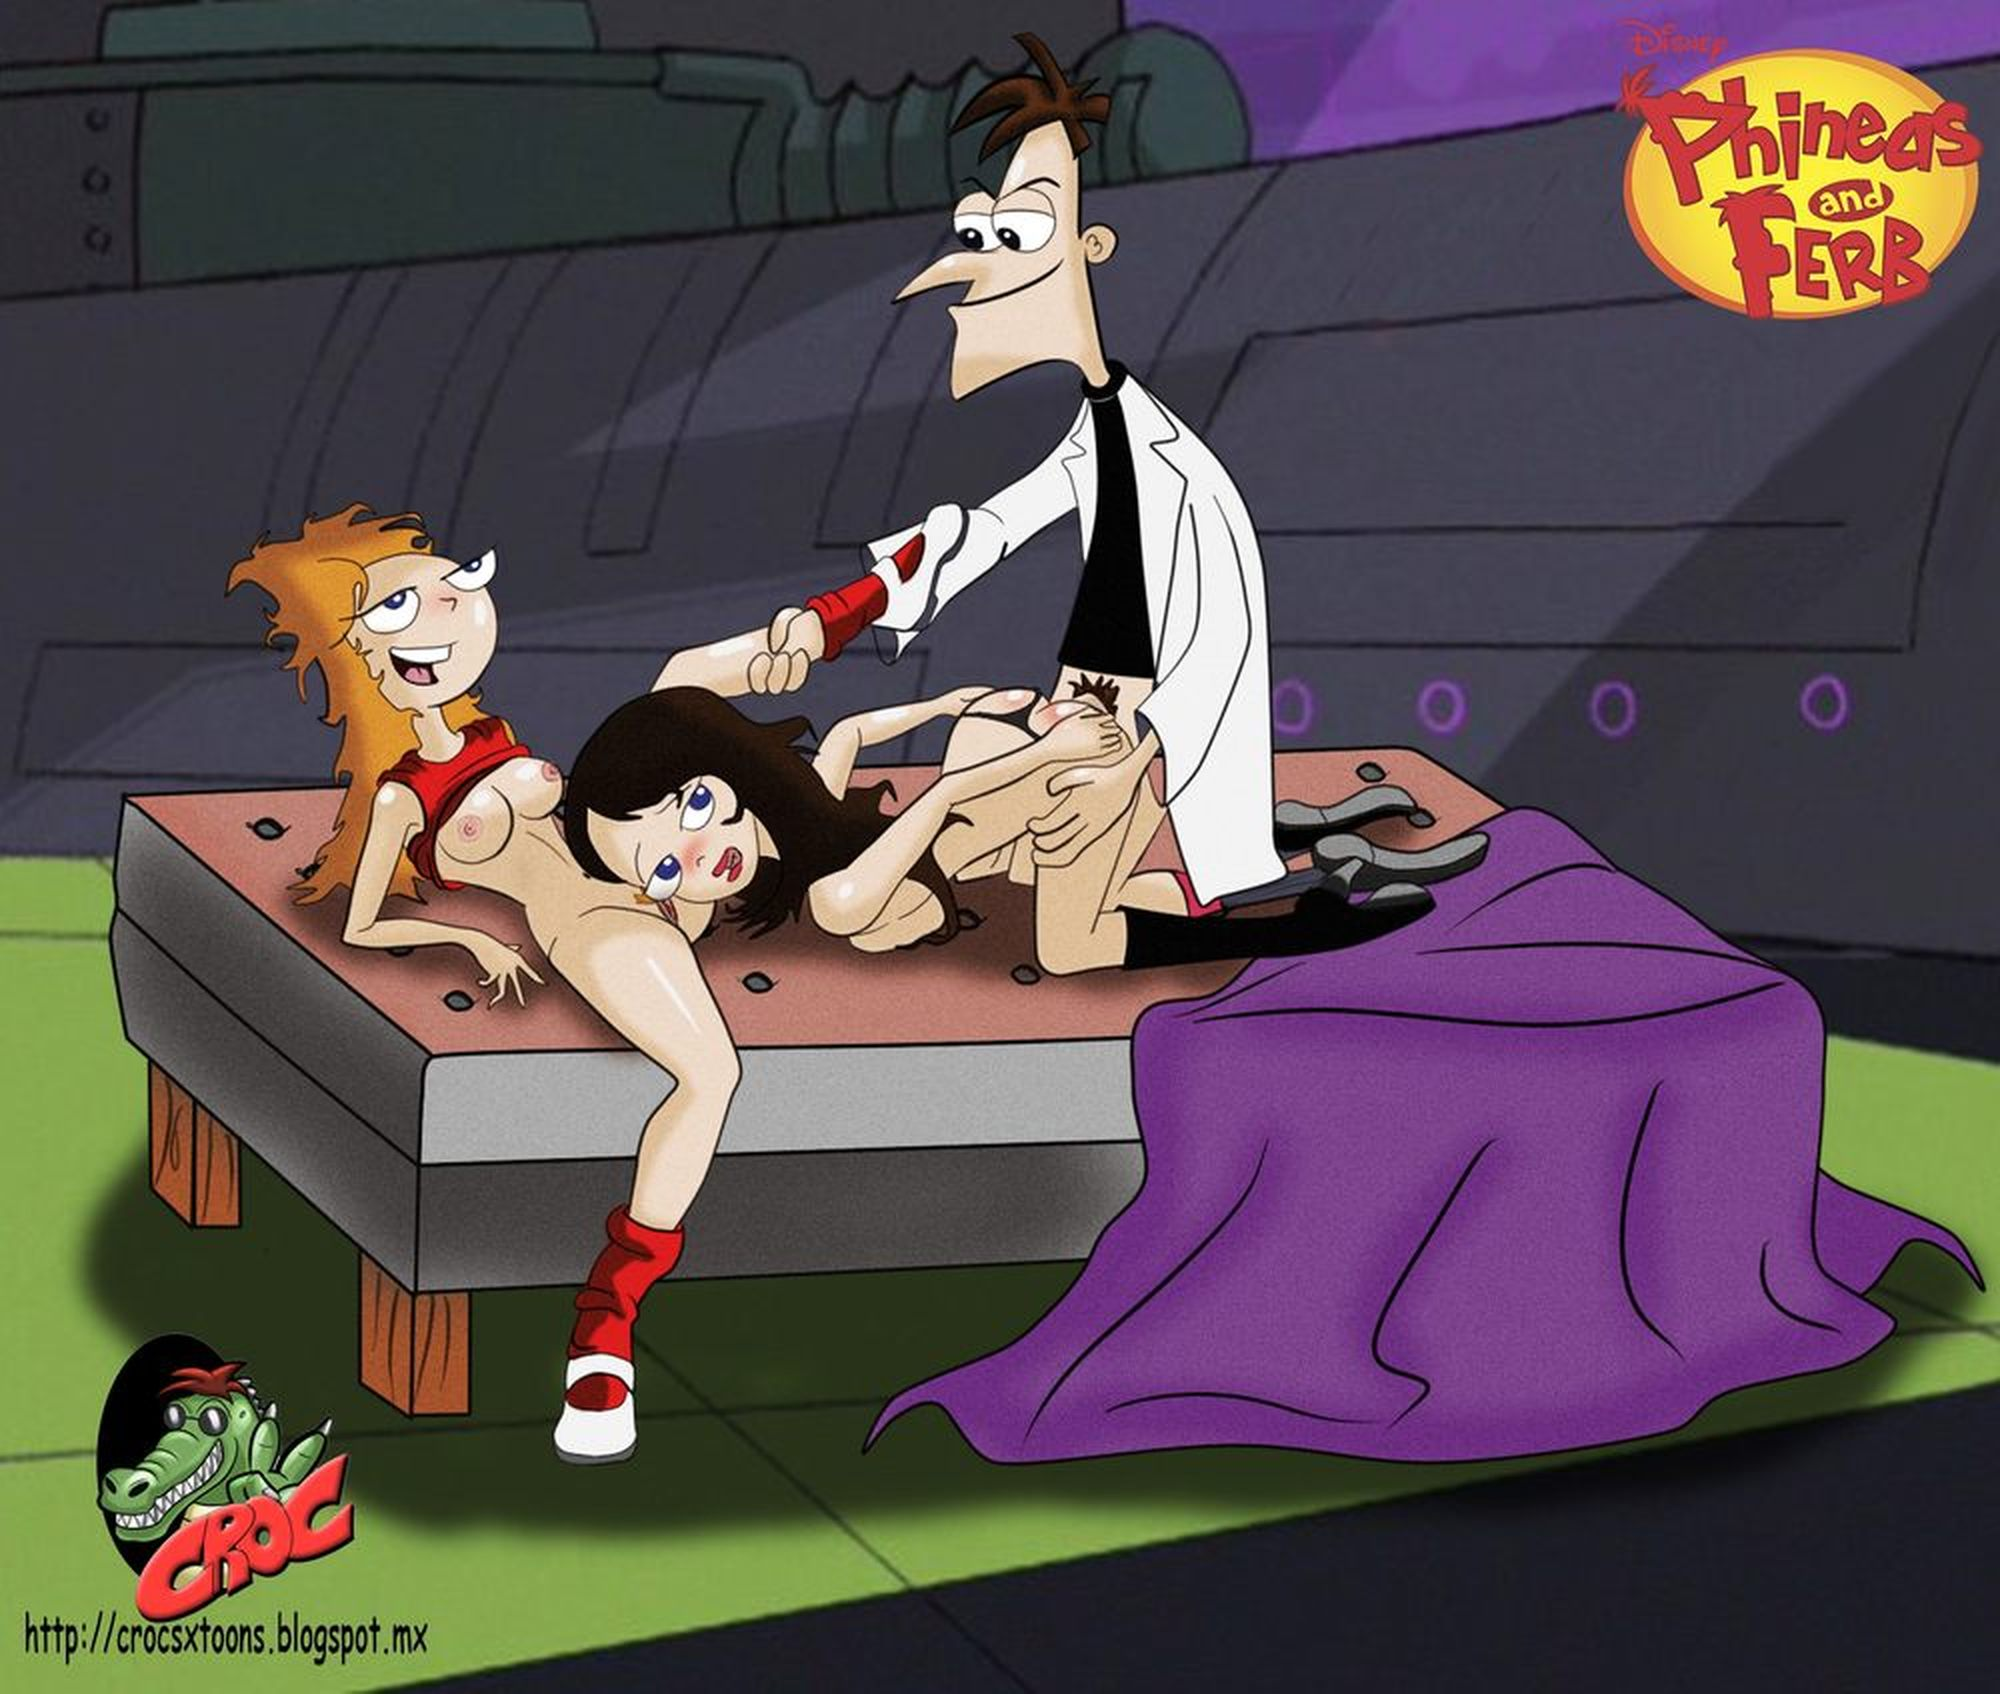 Assured, that Phineas and ferb is naked